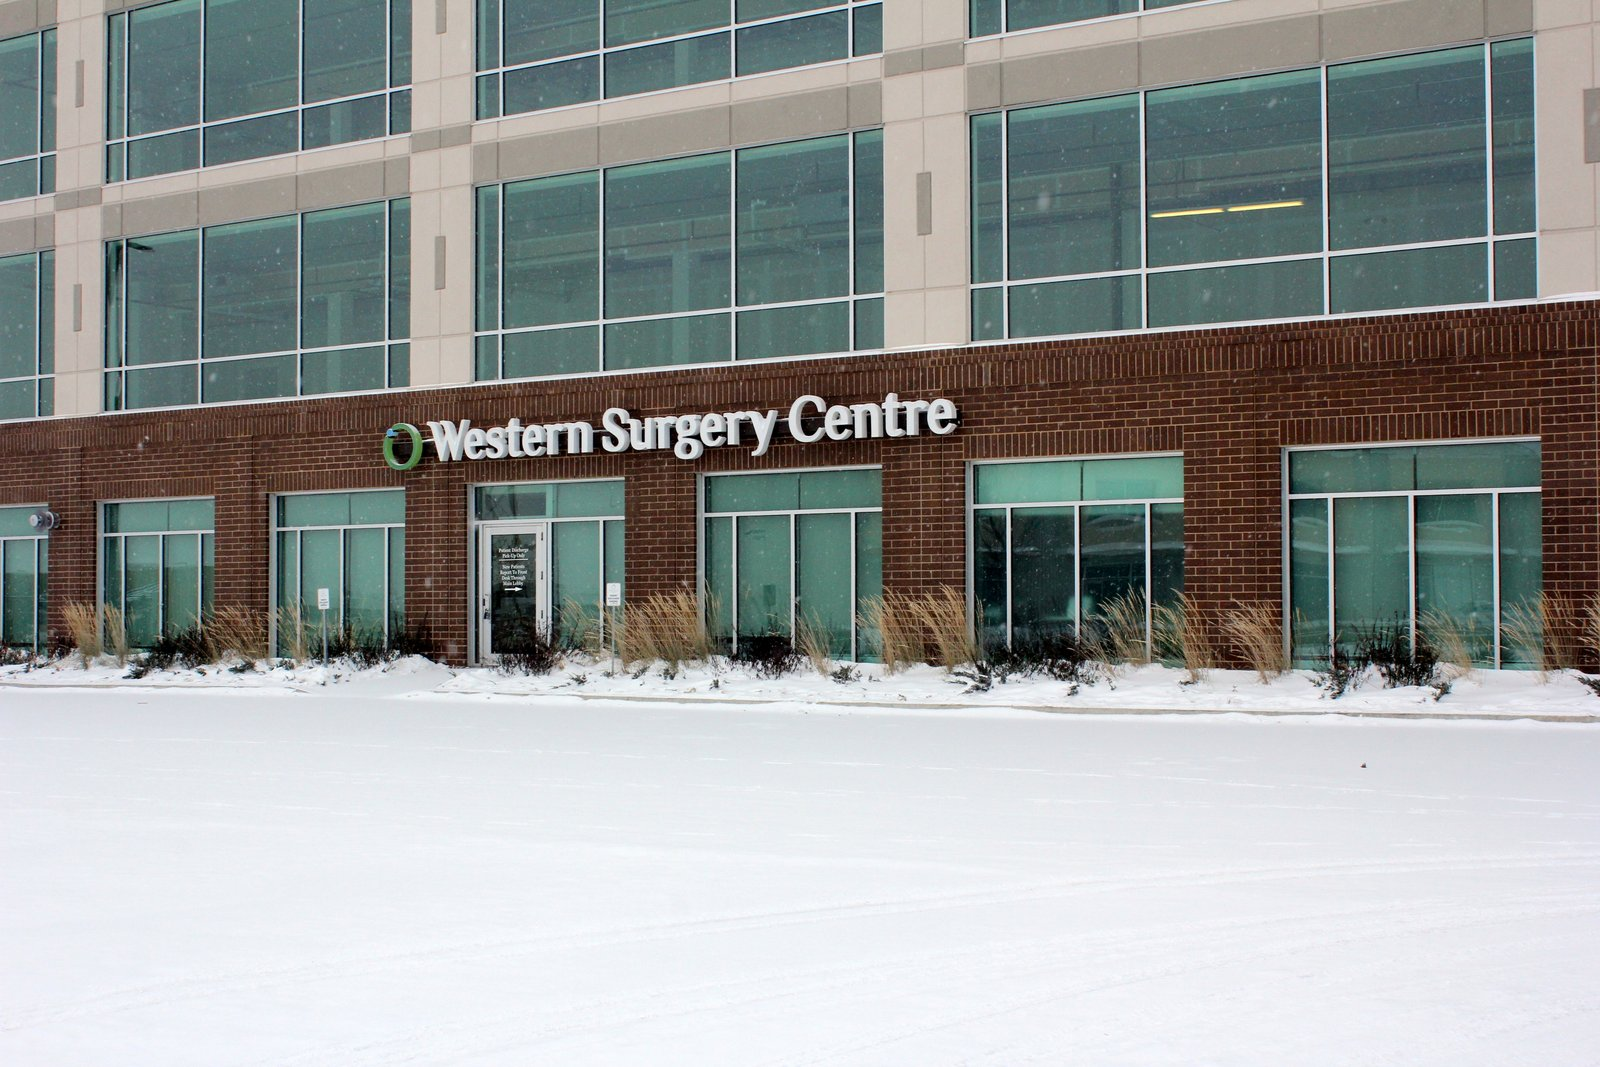 Western Surgery Centre_0107